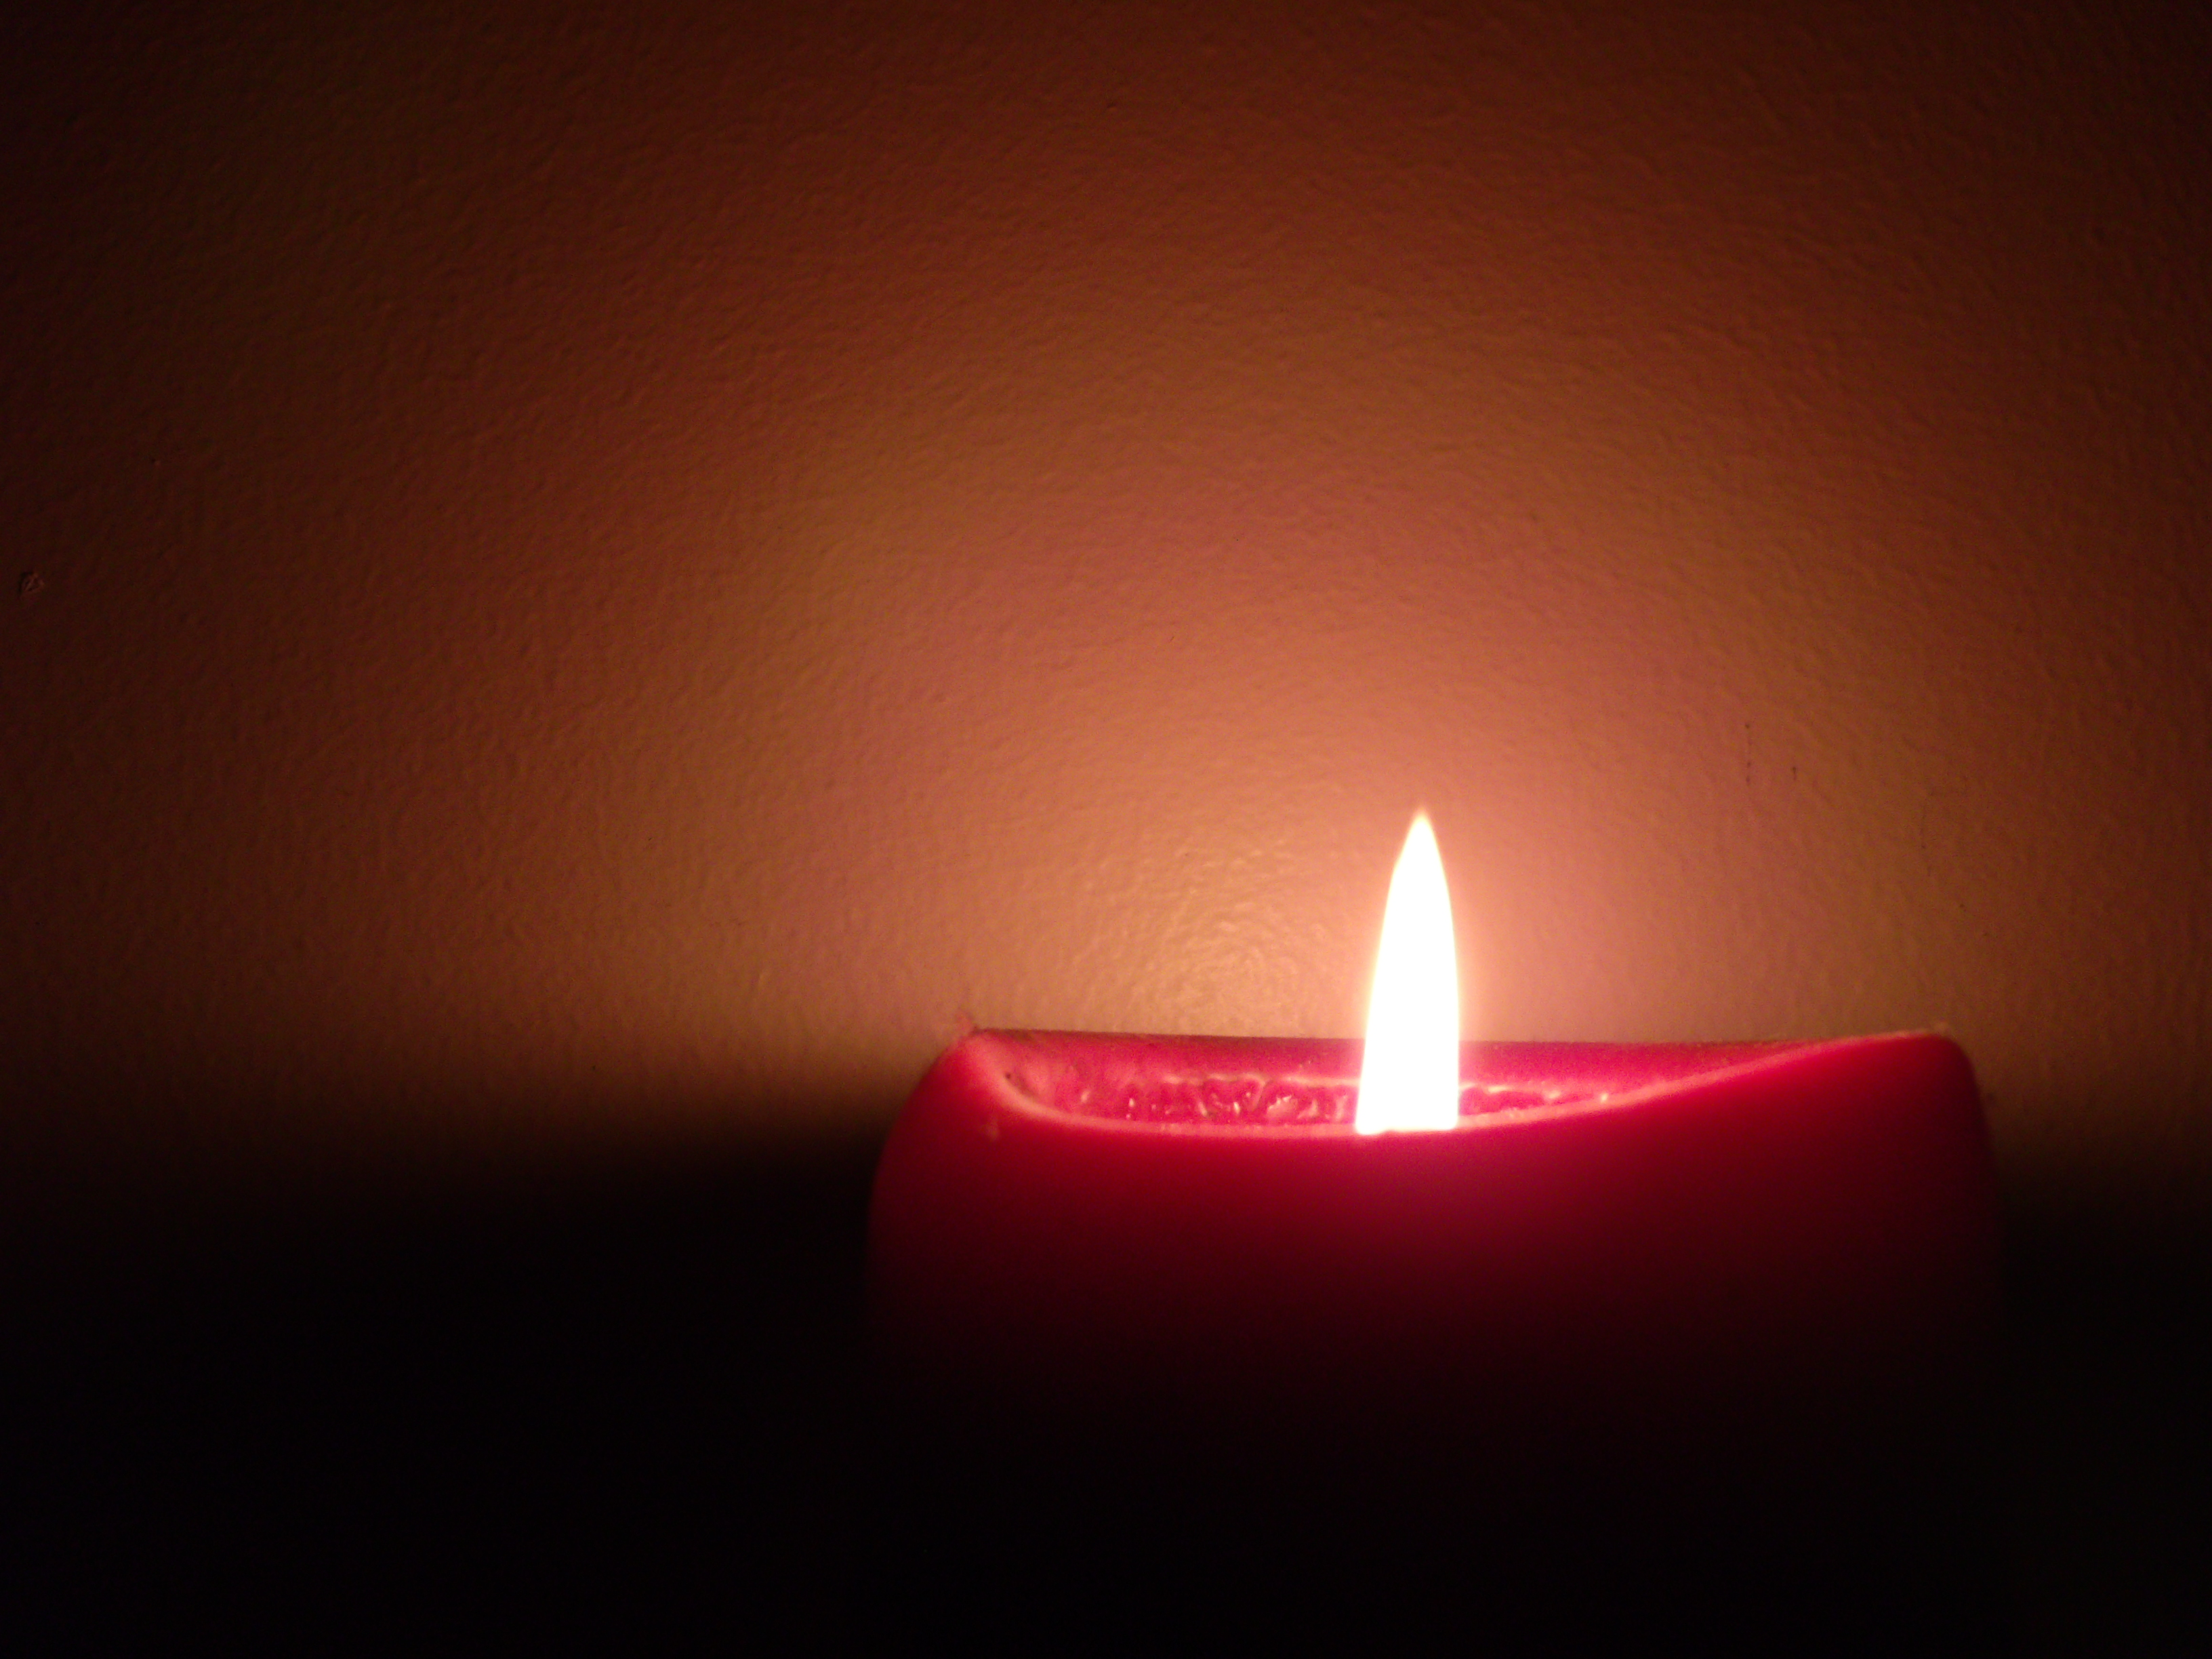 Dark room with candle light - Is